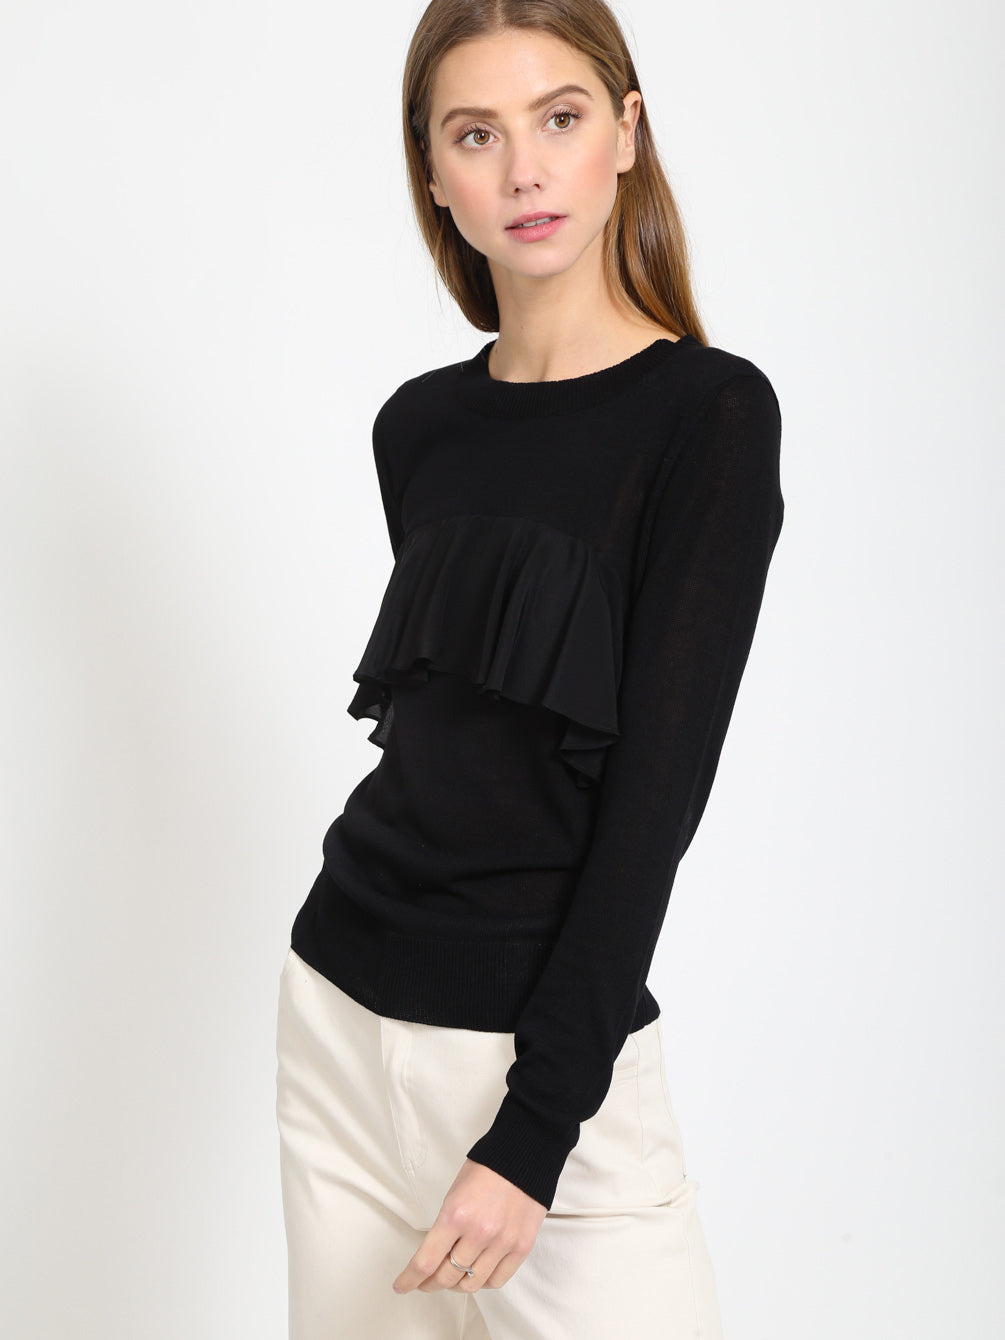 The Estelle Top